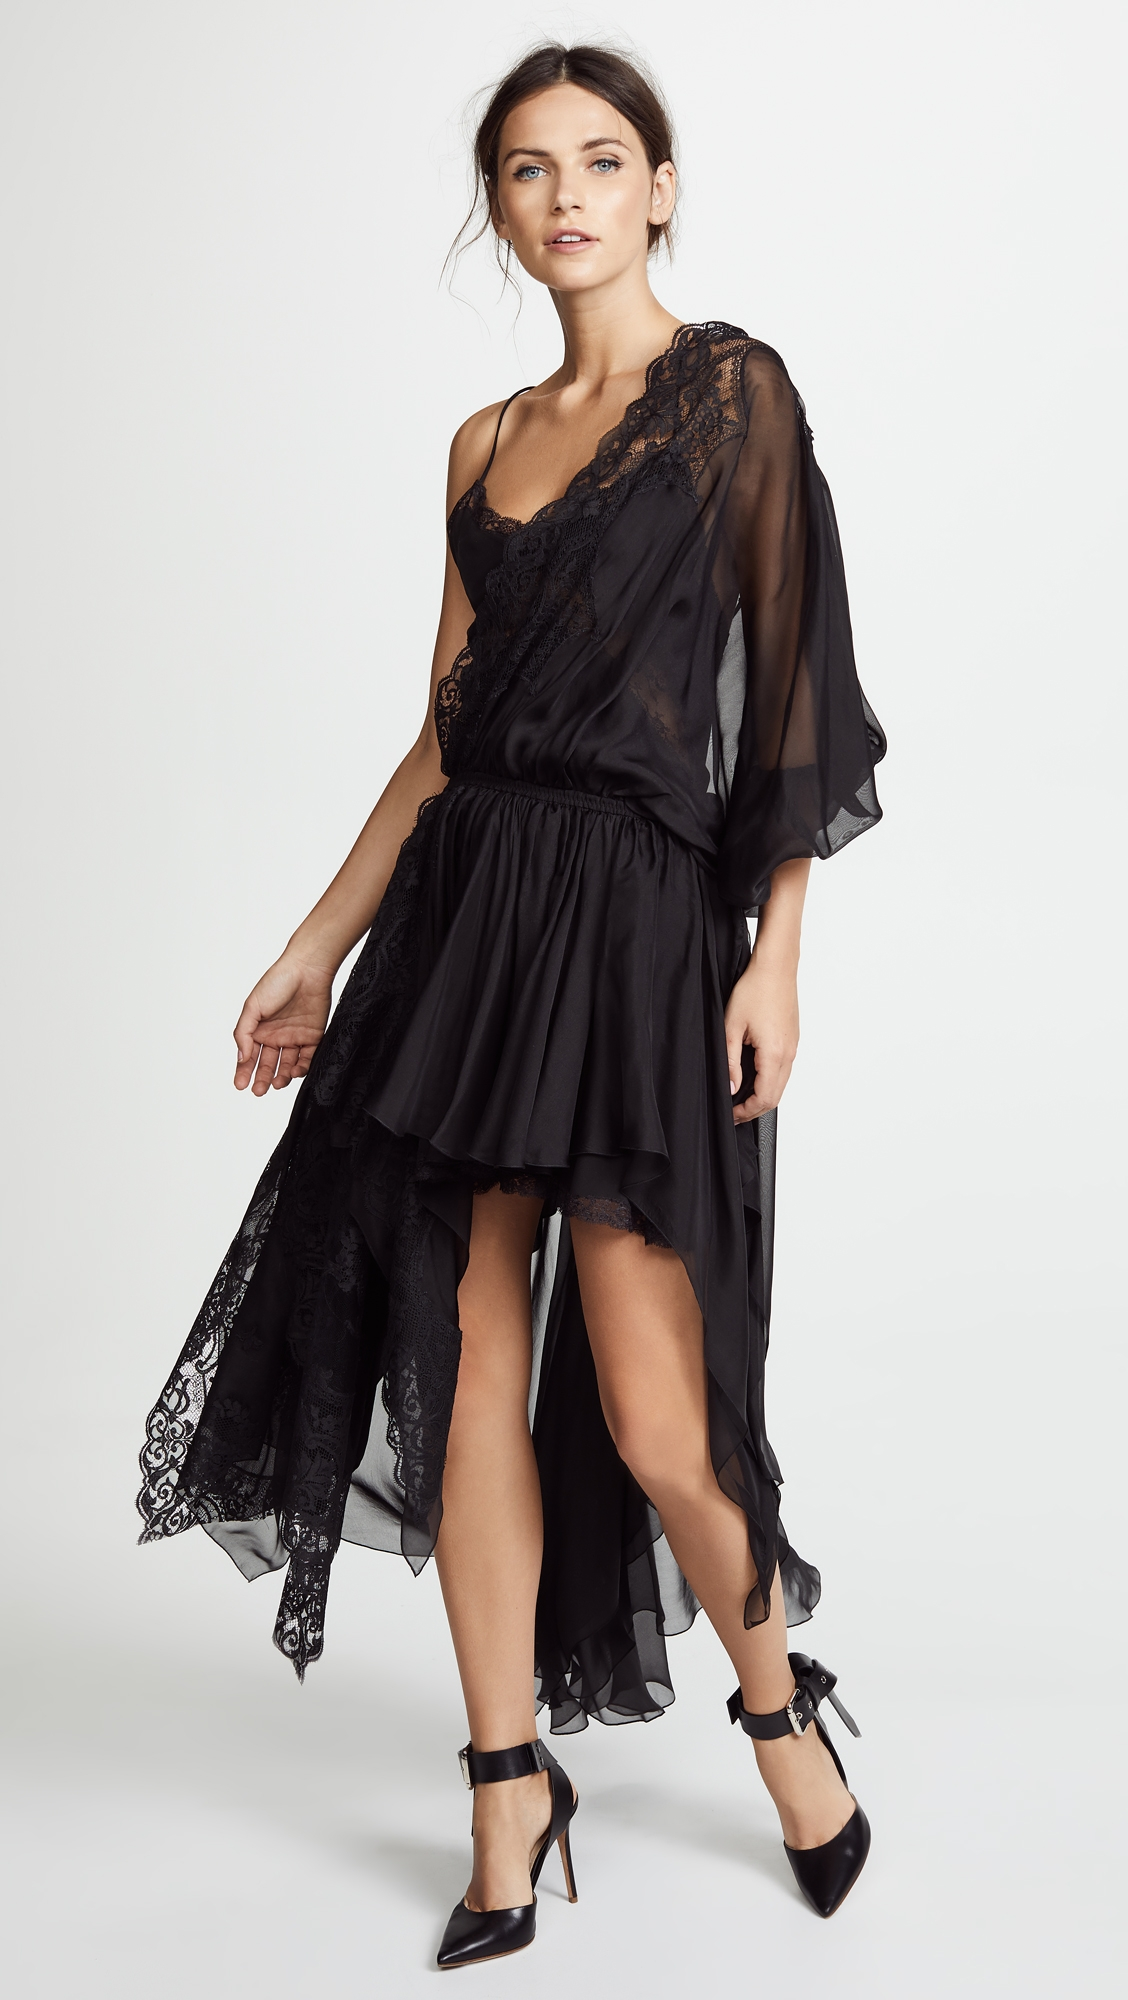 Shoulder Lace DressProducts DressesDress Lace DressProducts One One DressesDress Shoulder CxoedB